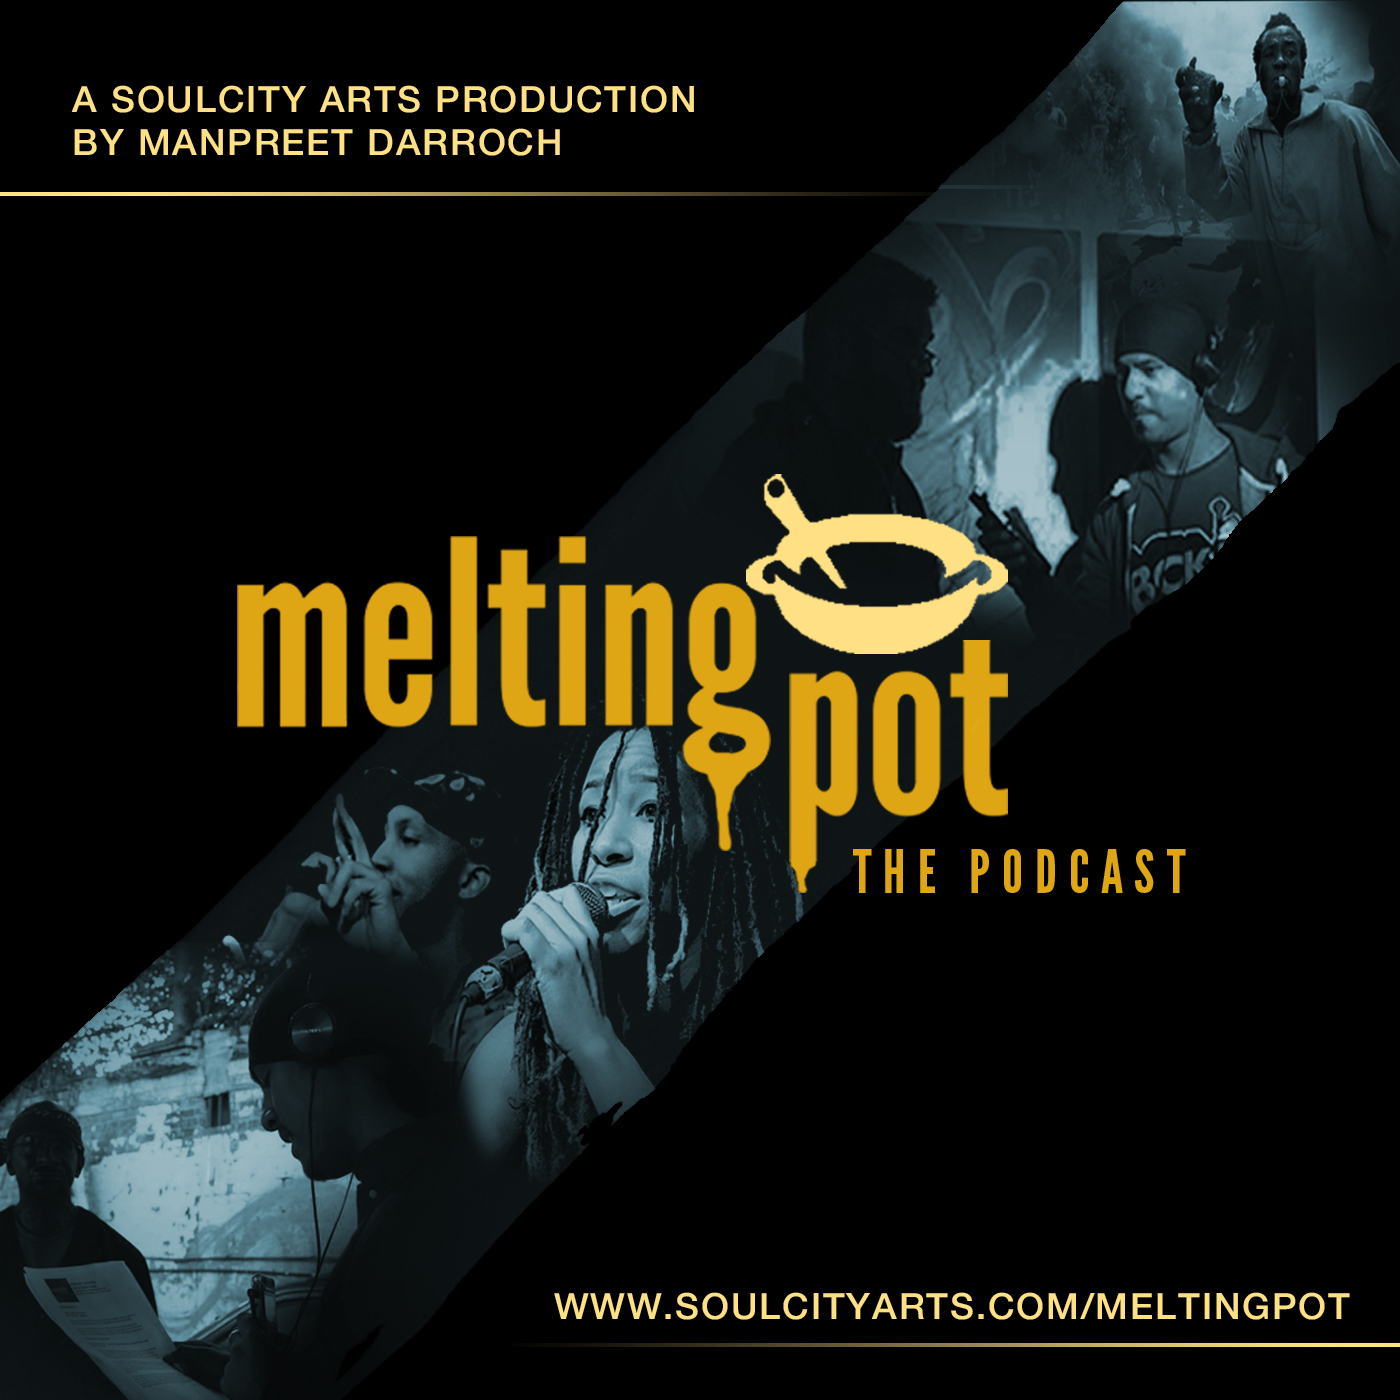 The Melting Pot Podcast